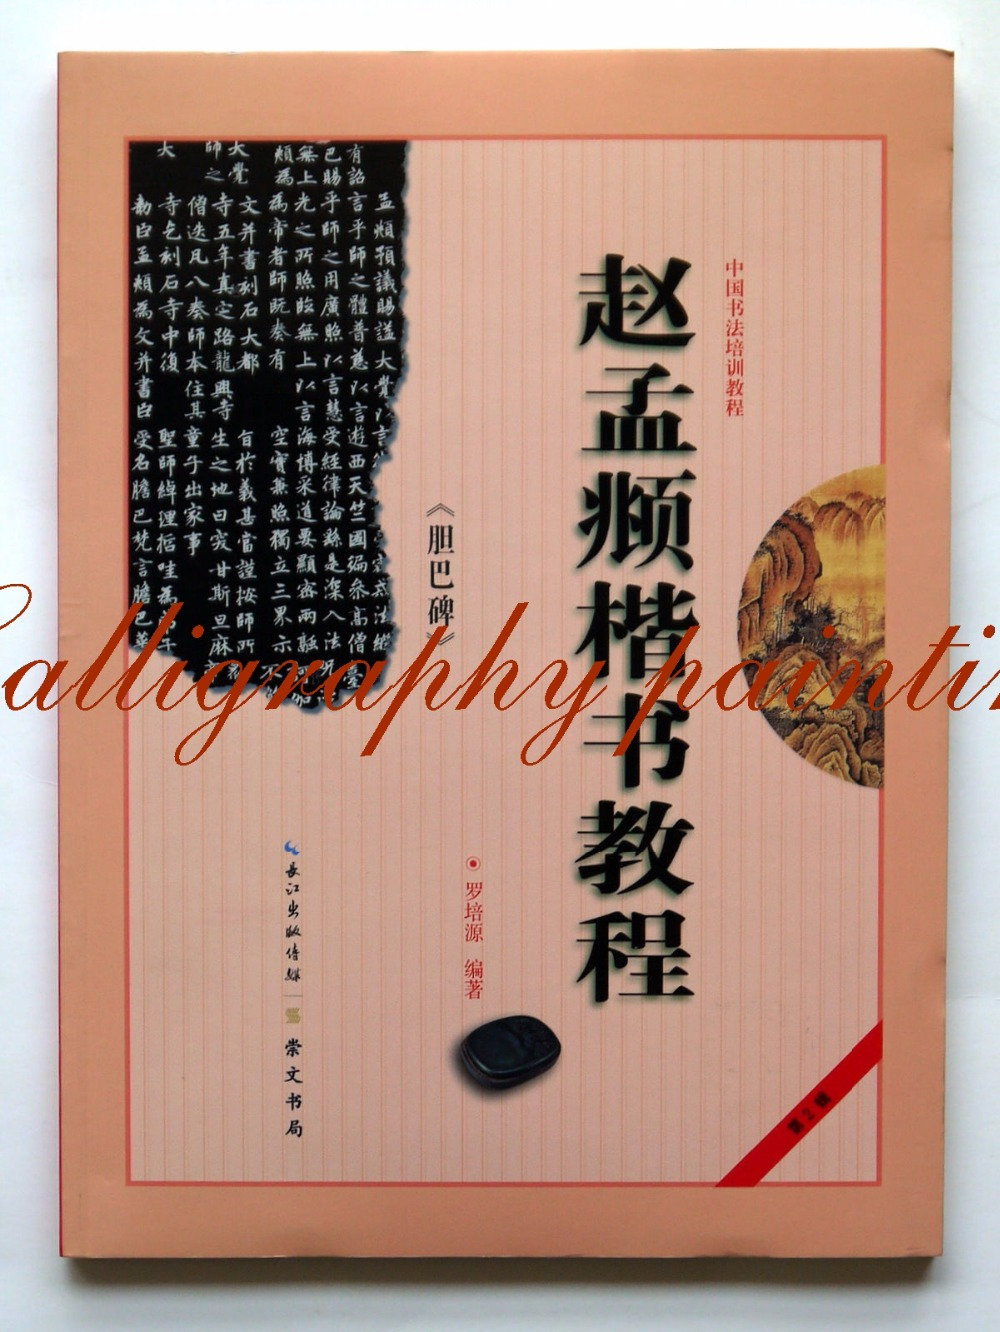 Chinese calligraphy Kaishu course book Zhao MengFu Dan Ba Bei Calligraphy Copybook chinese calligraphy book the complete works of zhao mengtiao s calligraphy